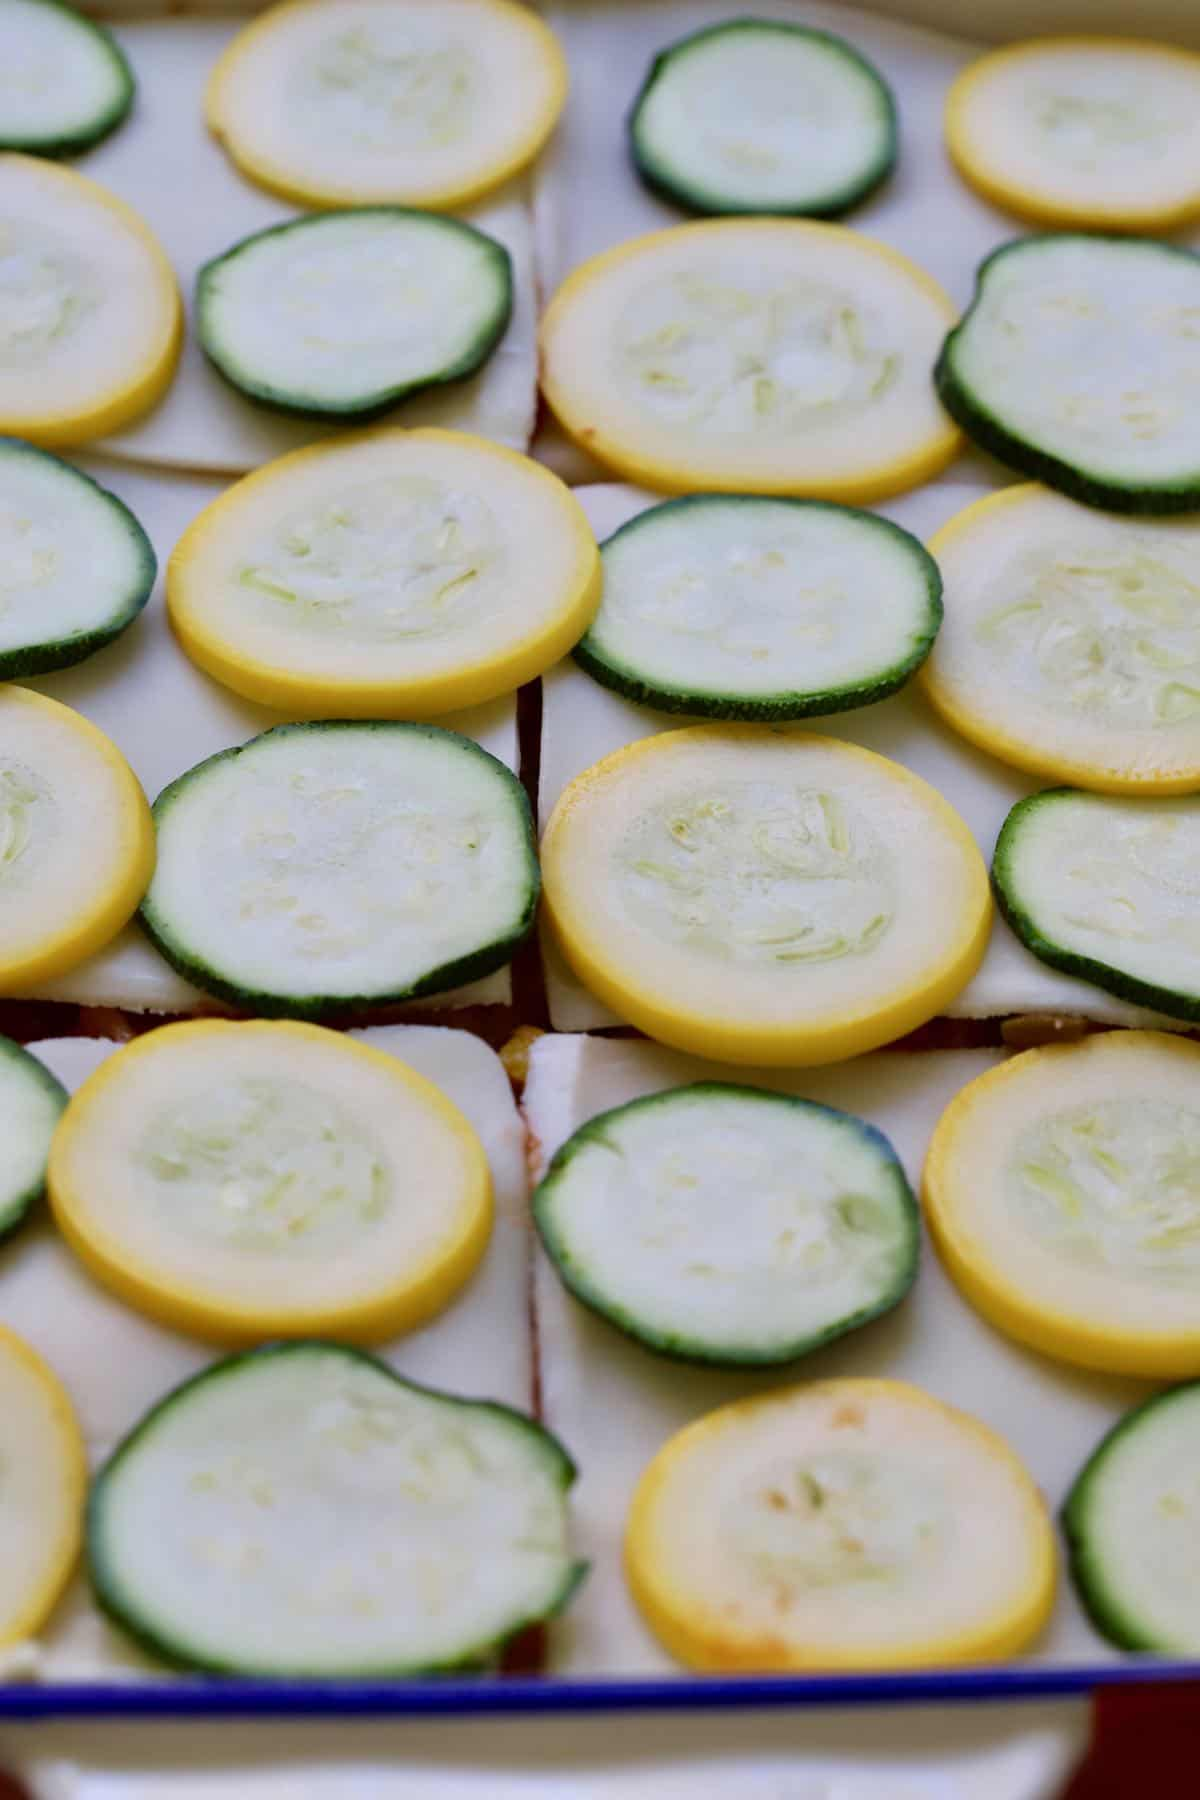 Sliced yellow and zucchini squash on top of mozzarella slices in a baking dish.